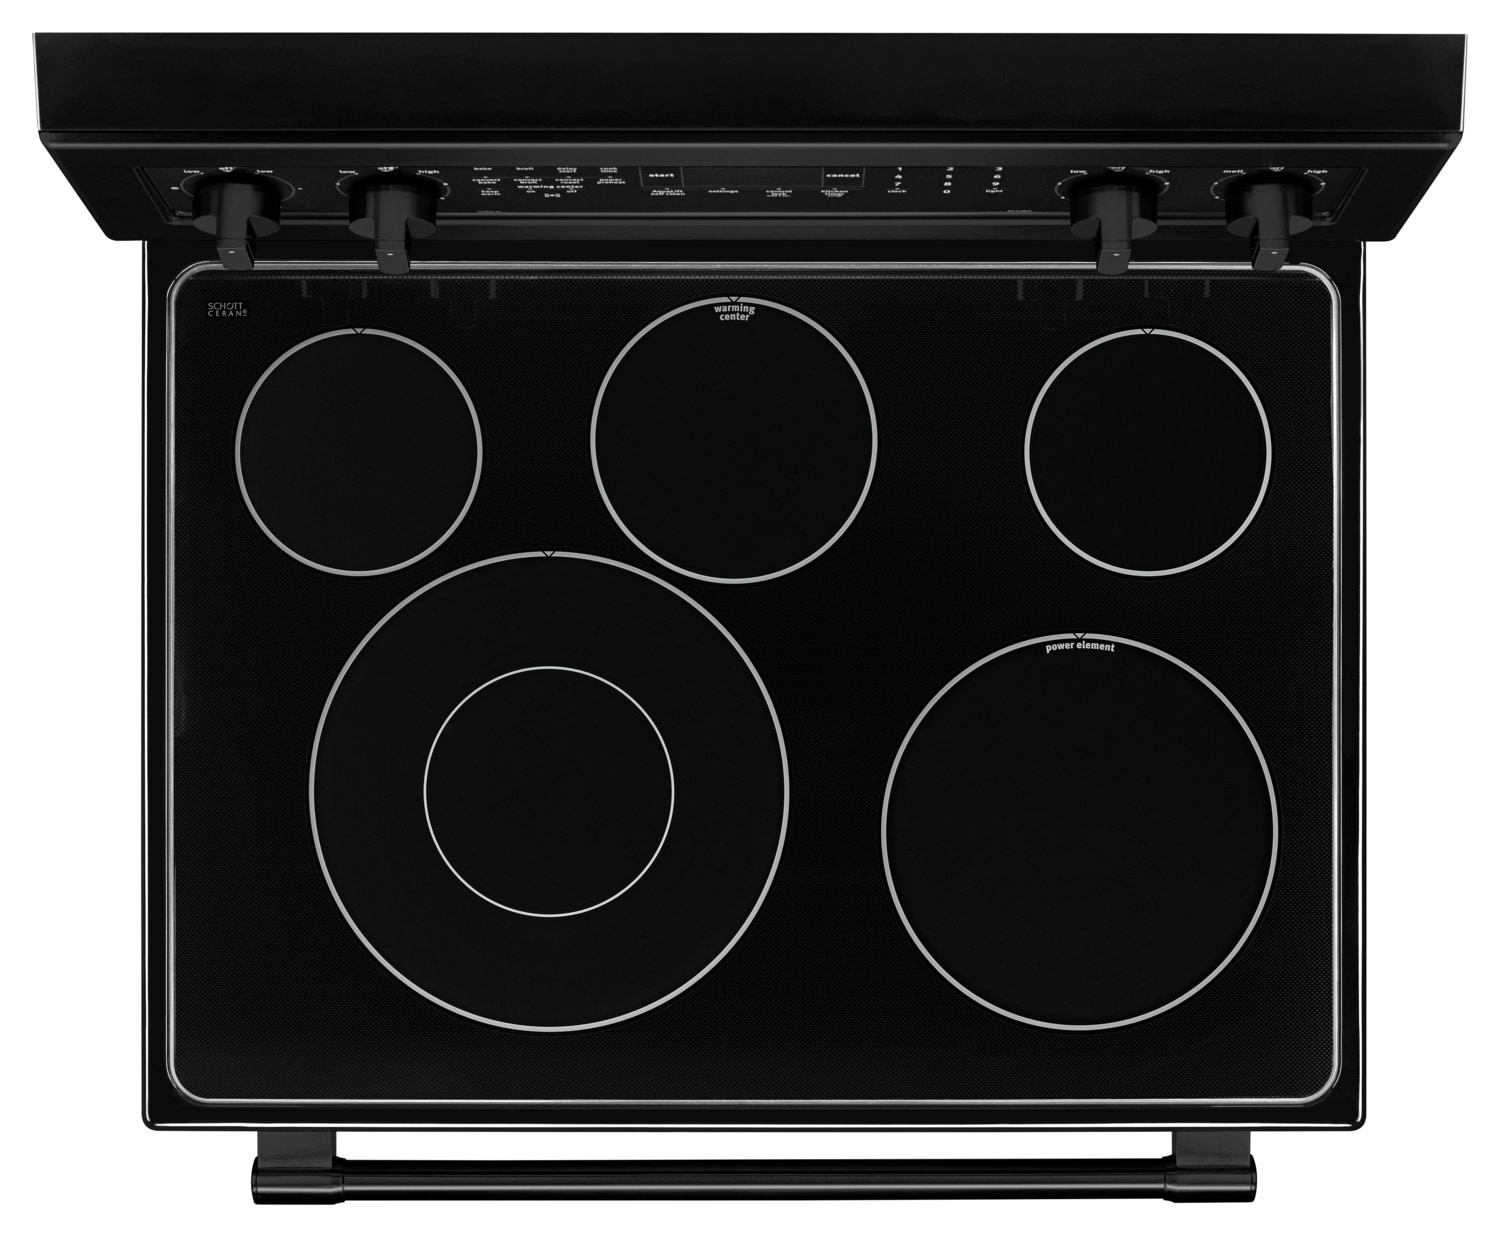 Uncategorized Kitchener Appliance Stores ranges leons maytag black freestanding electric convection range 6 4 cu ft ymer8800fb